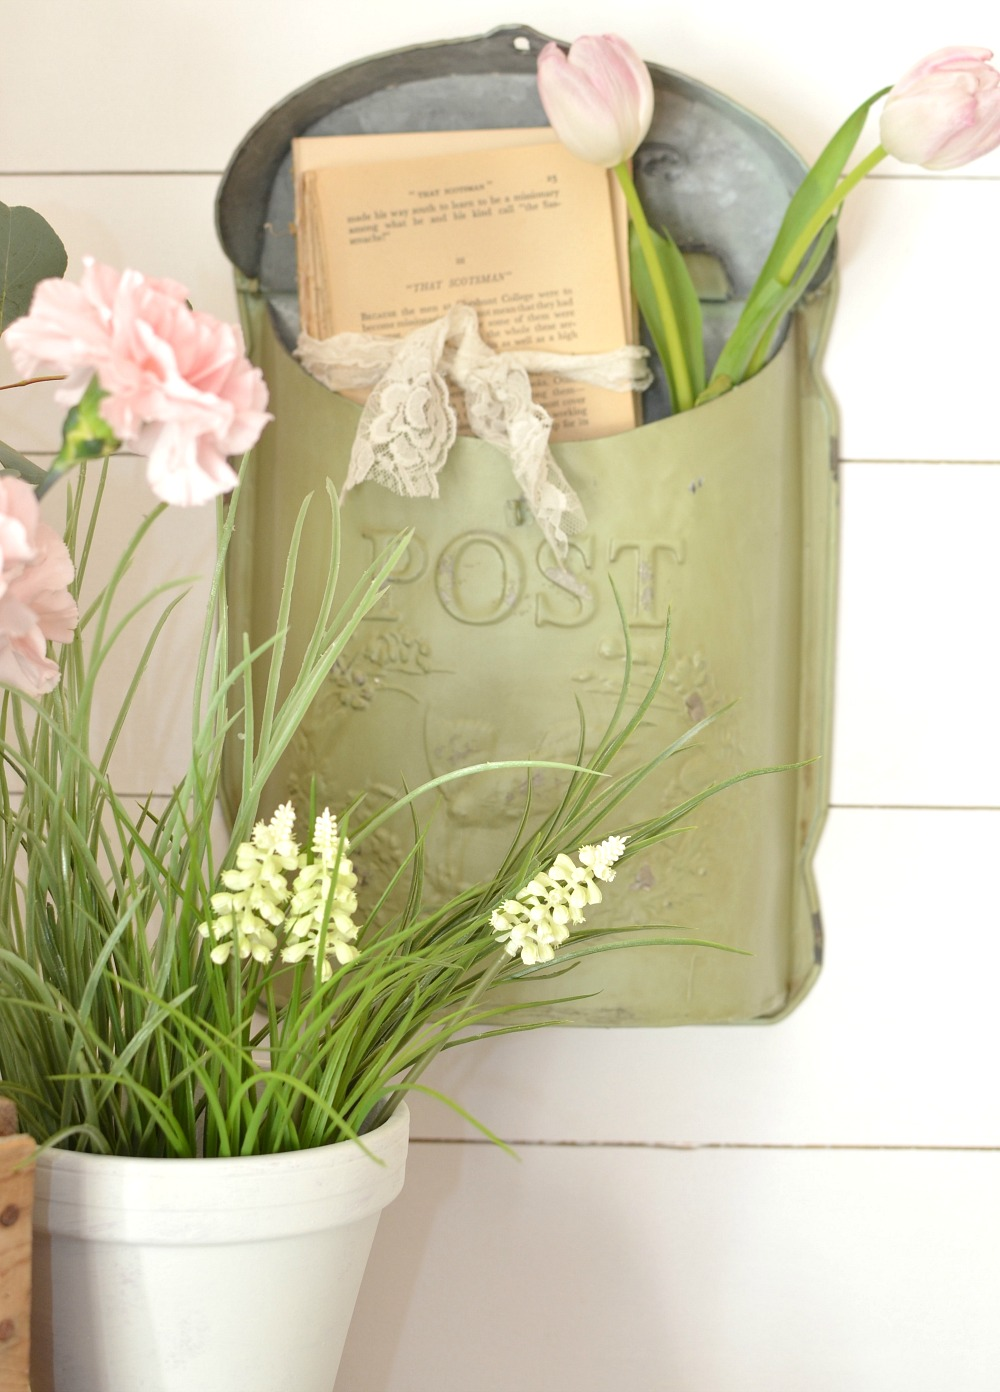 Spring decor and vintage postbox